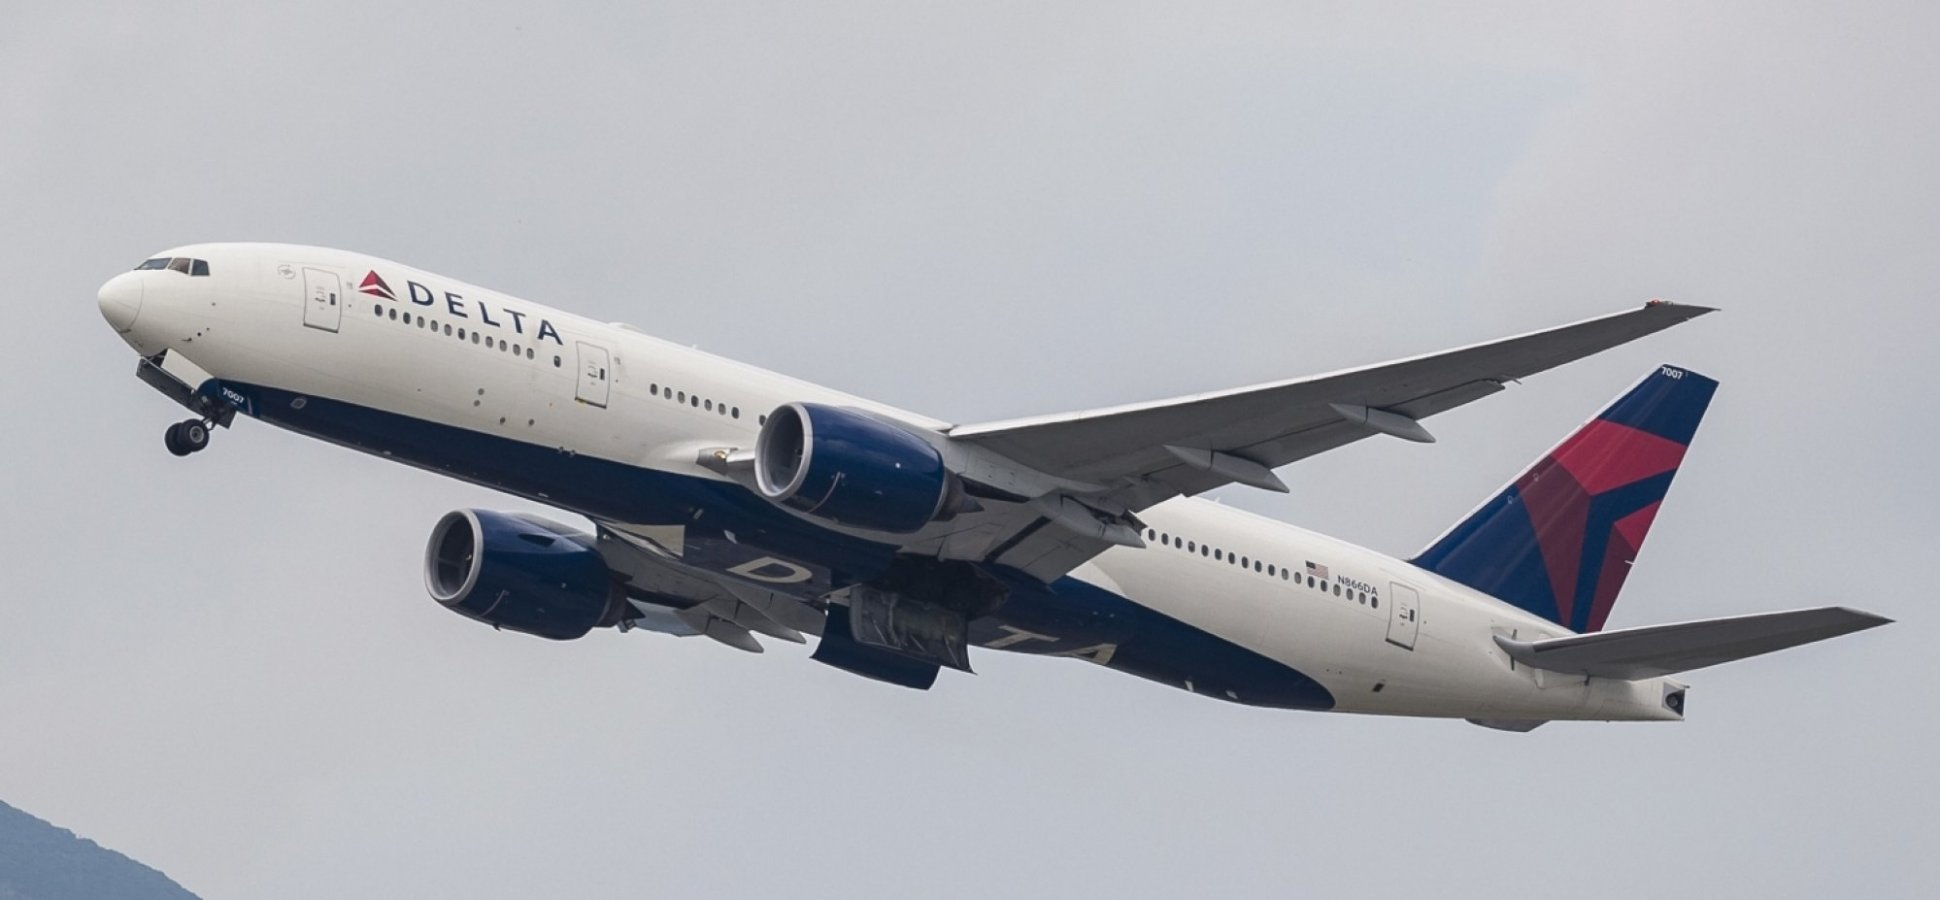 Delta Just Made an Incredible Announcement That Shamed American Airlines